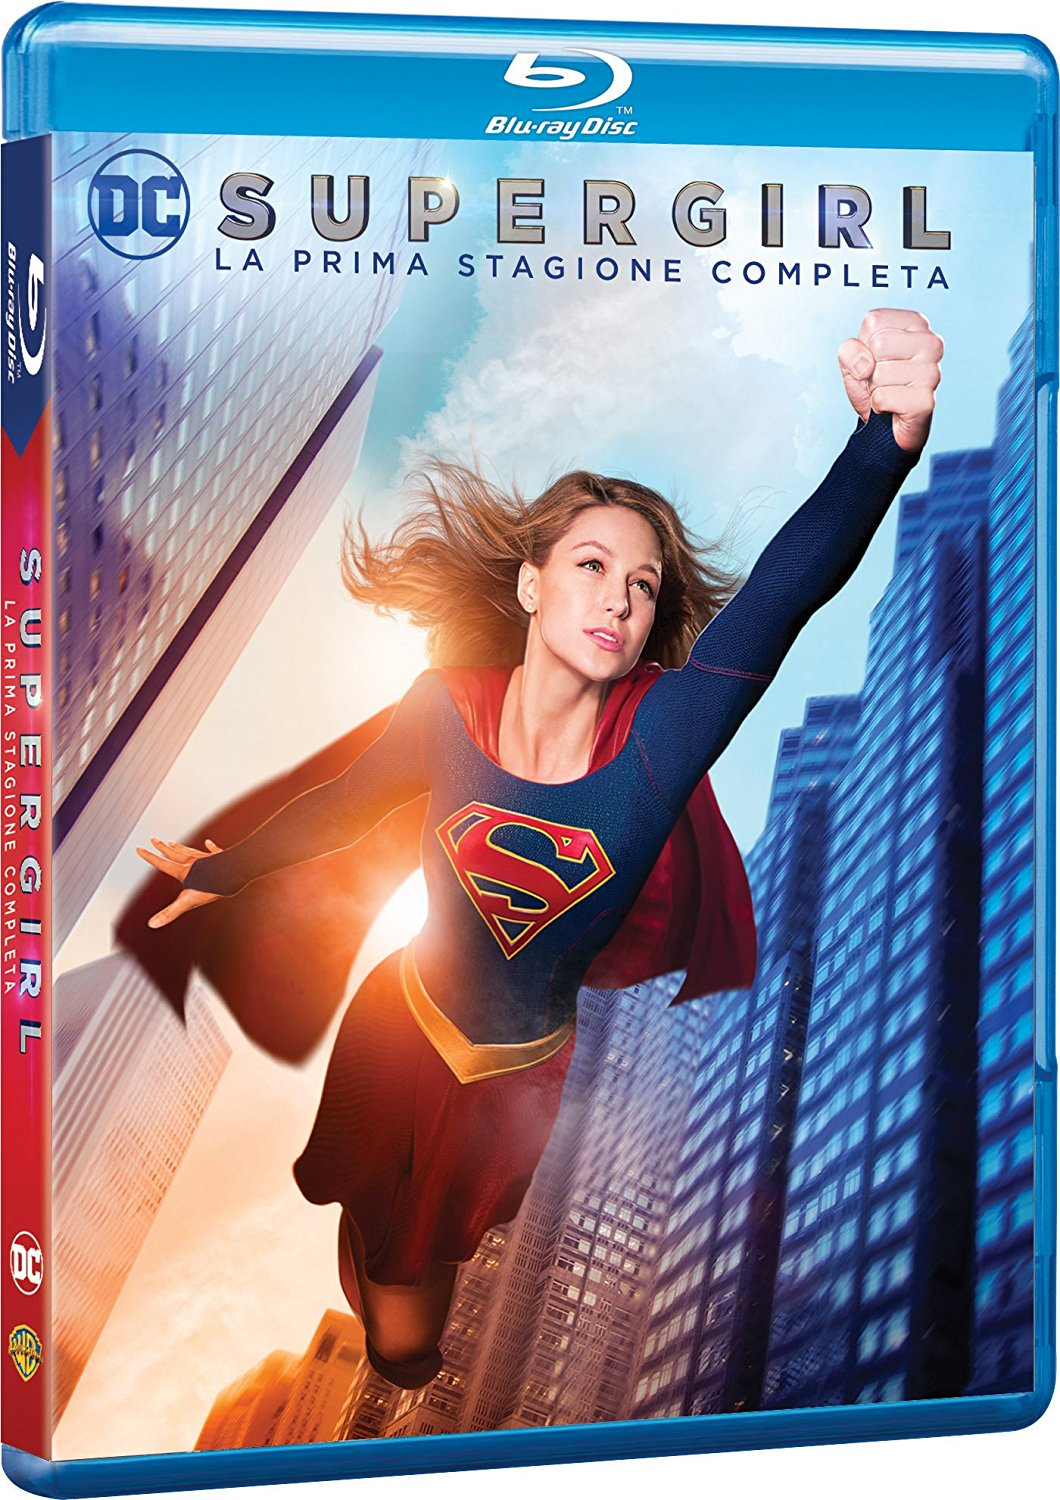 COF.SUPERGIRL - STAGIONE 01 (3 BLU-RAY)